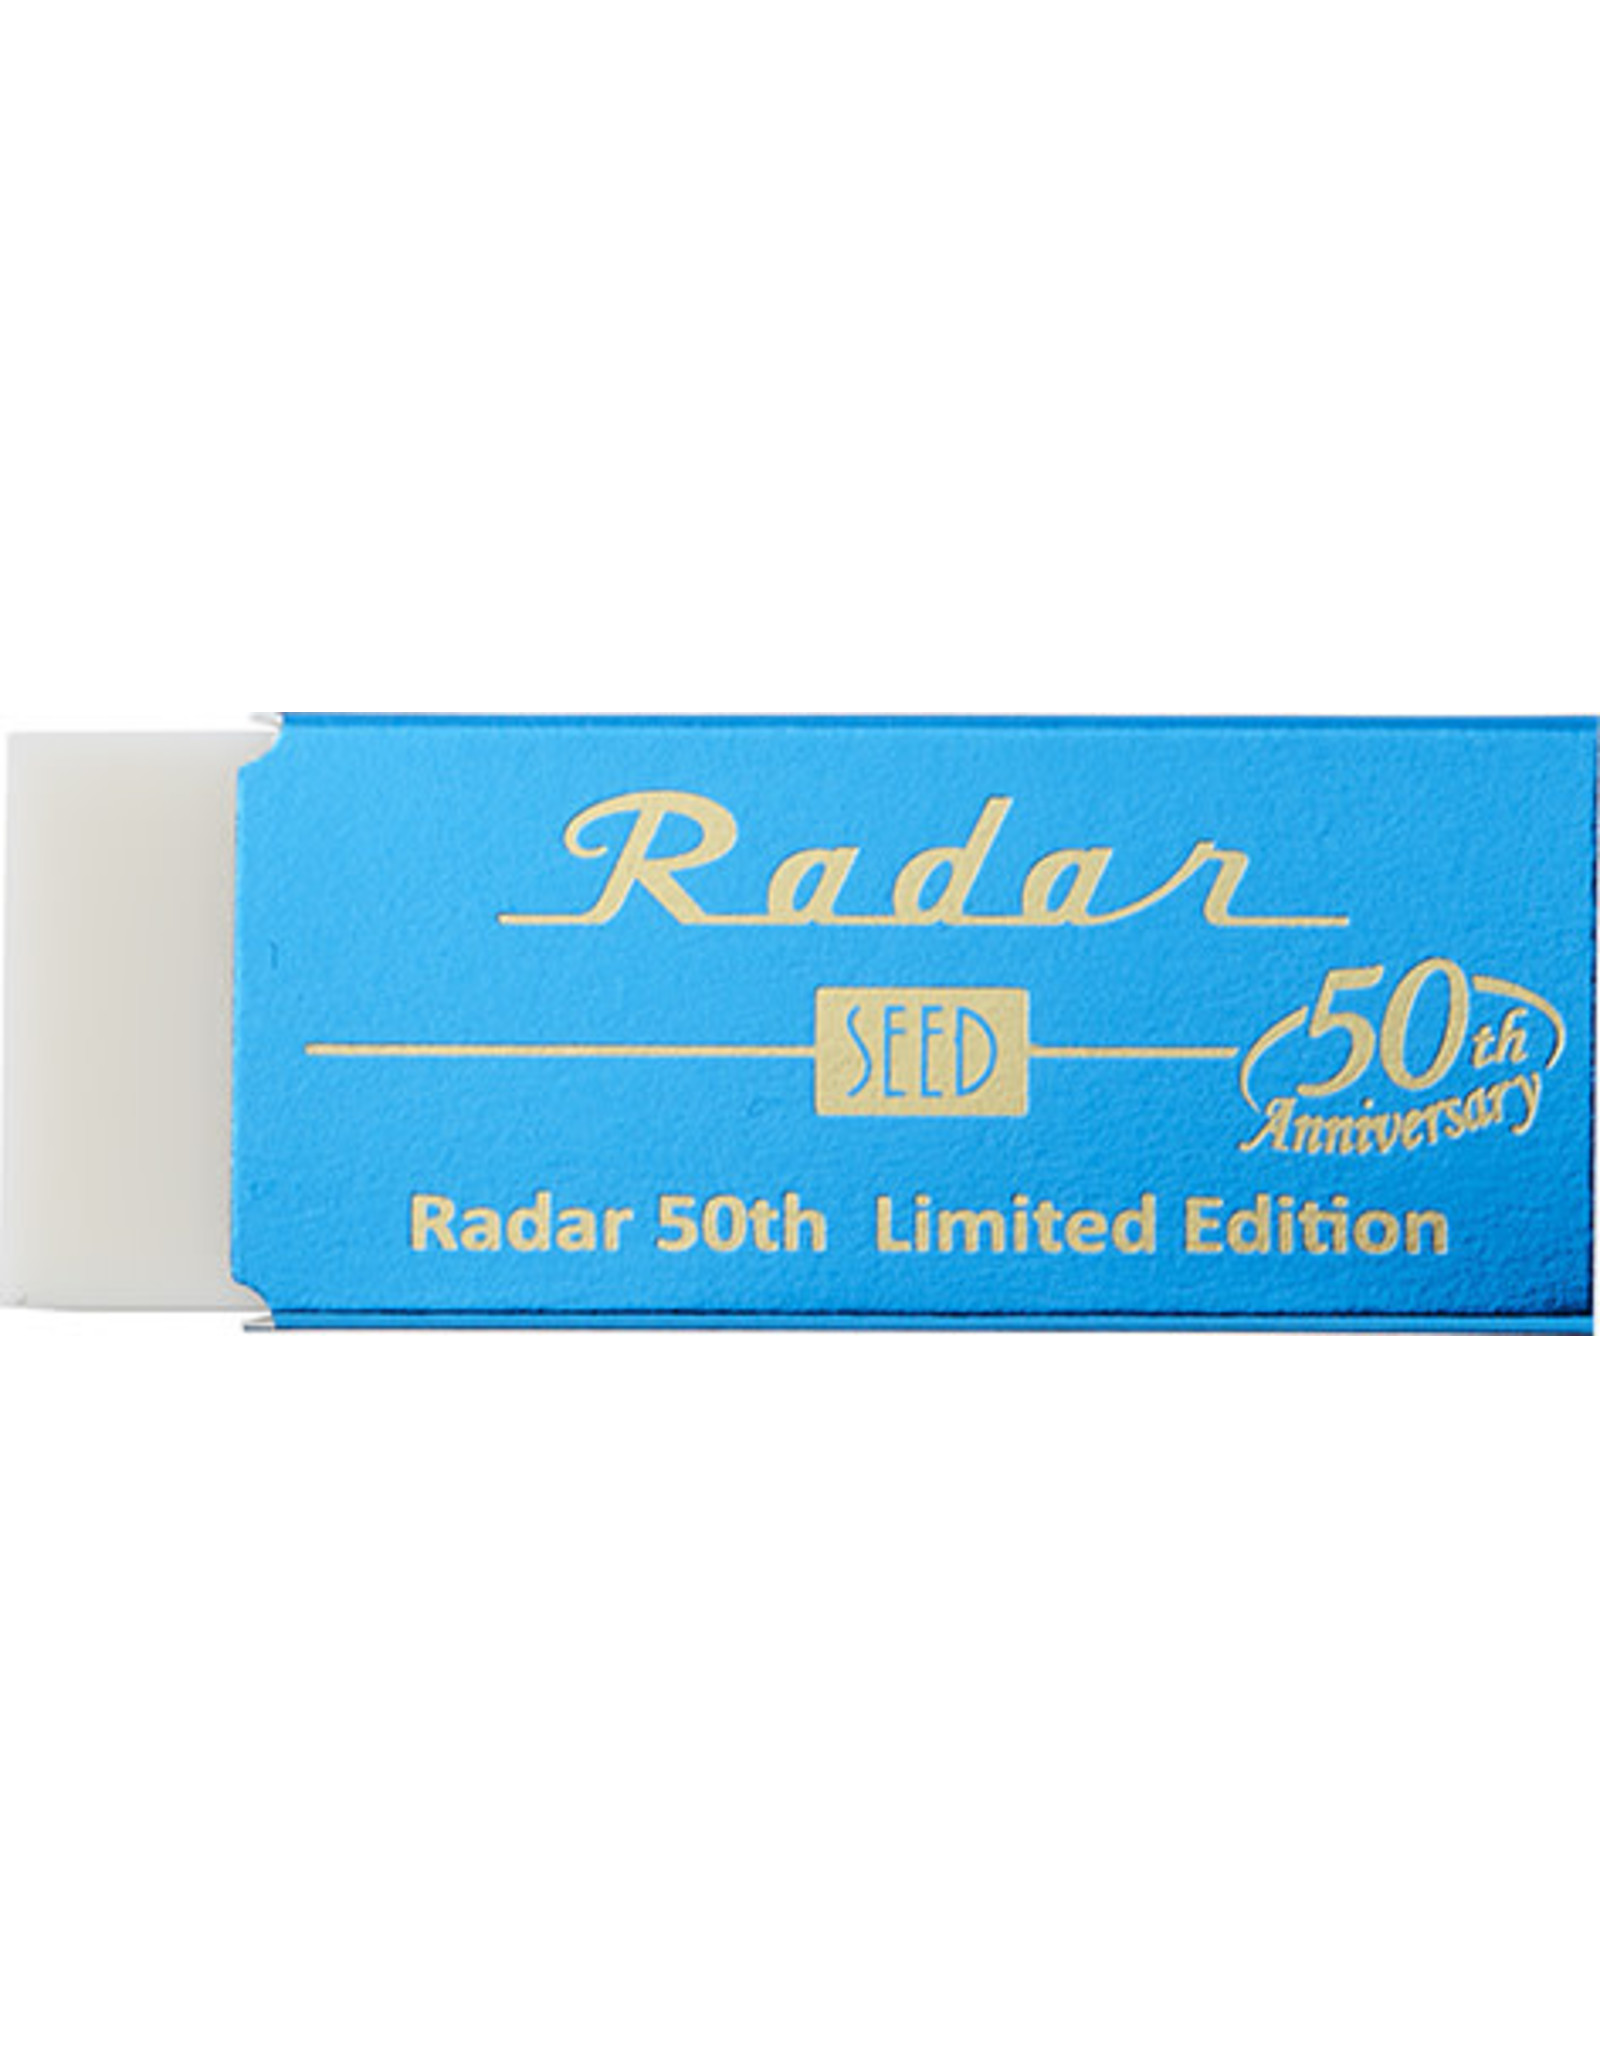 SEED SEED RADAR 50TH LIMITED EDITION S-100AN1